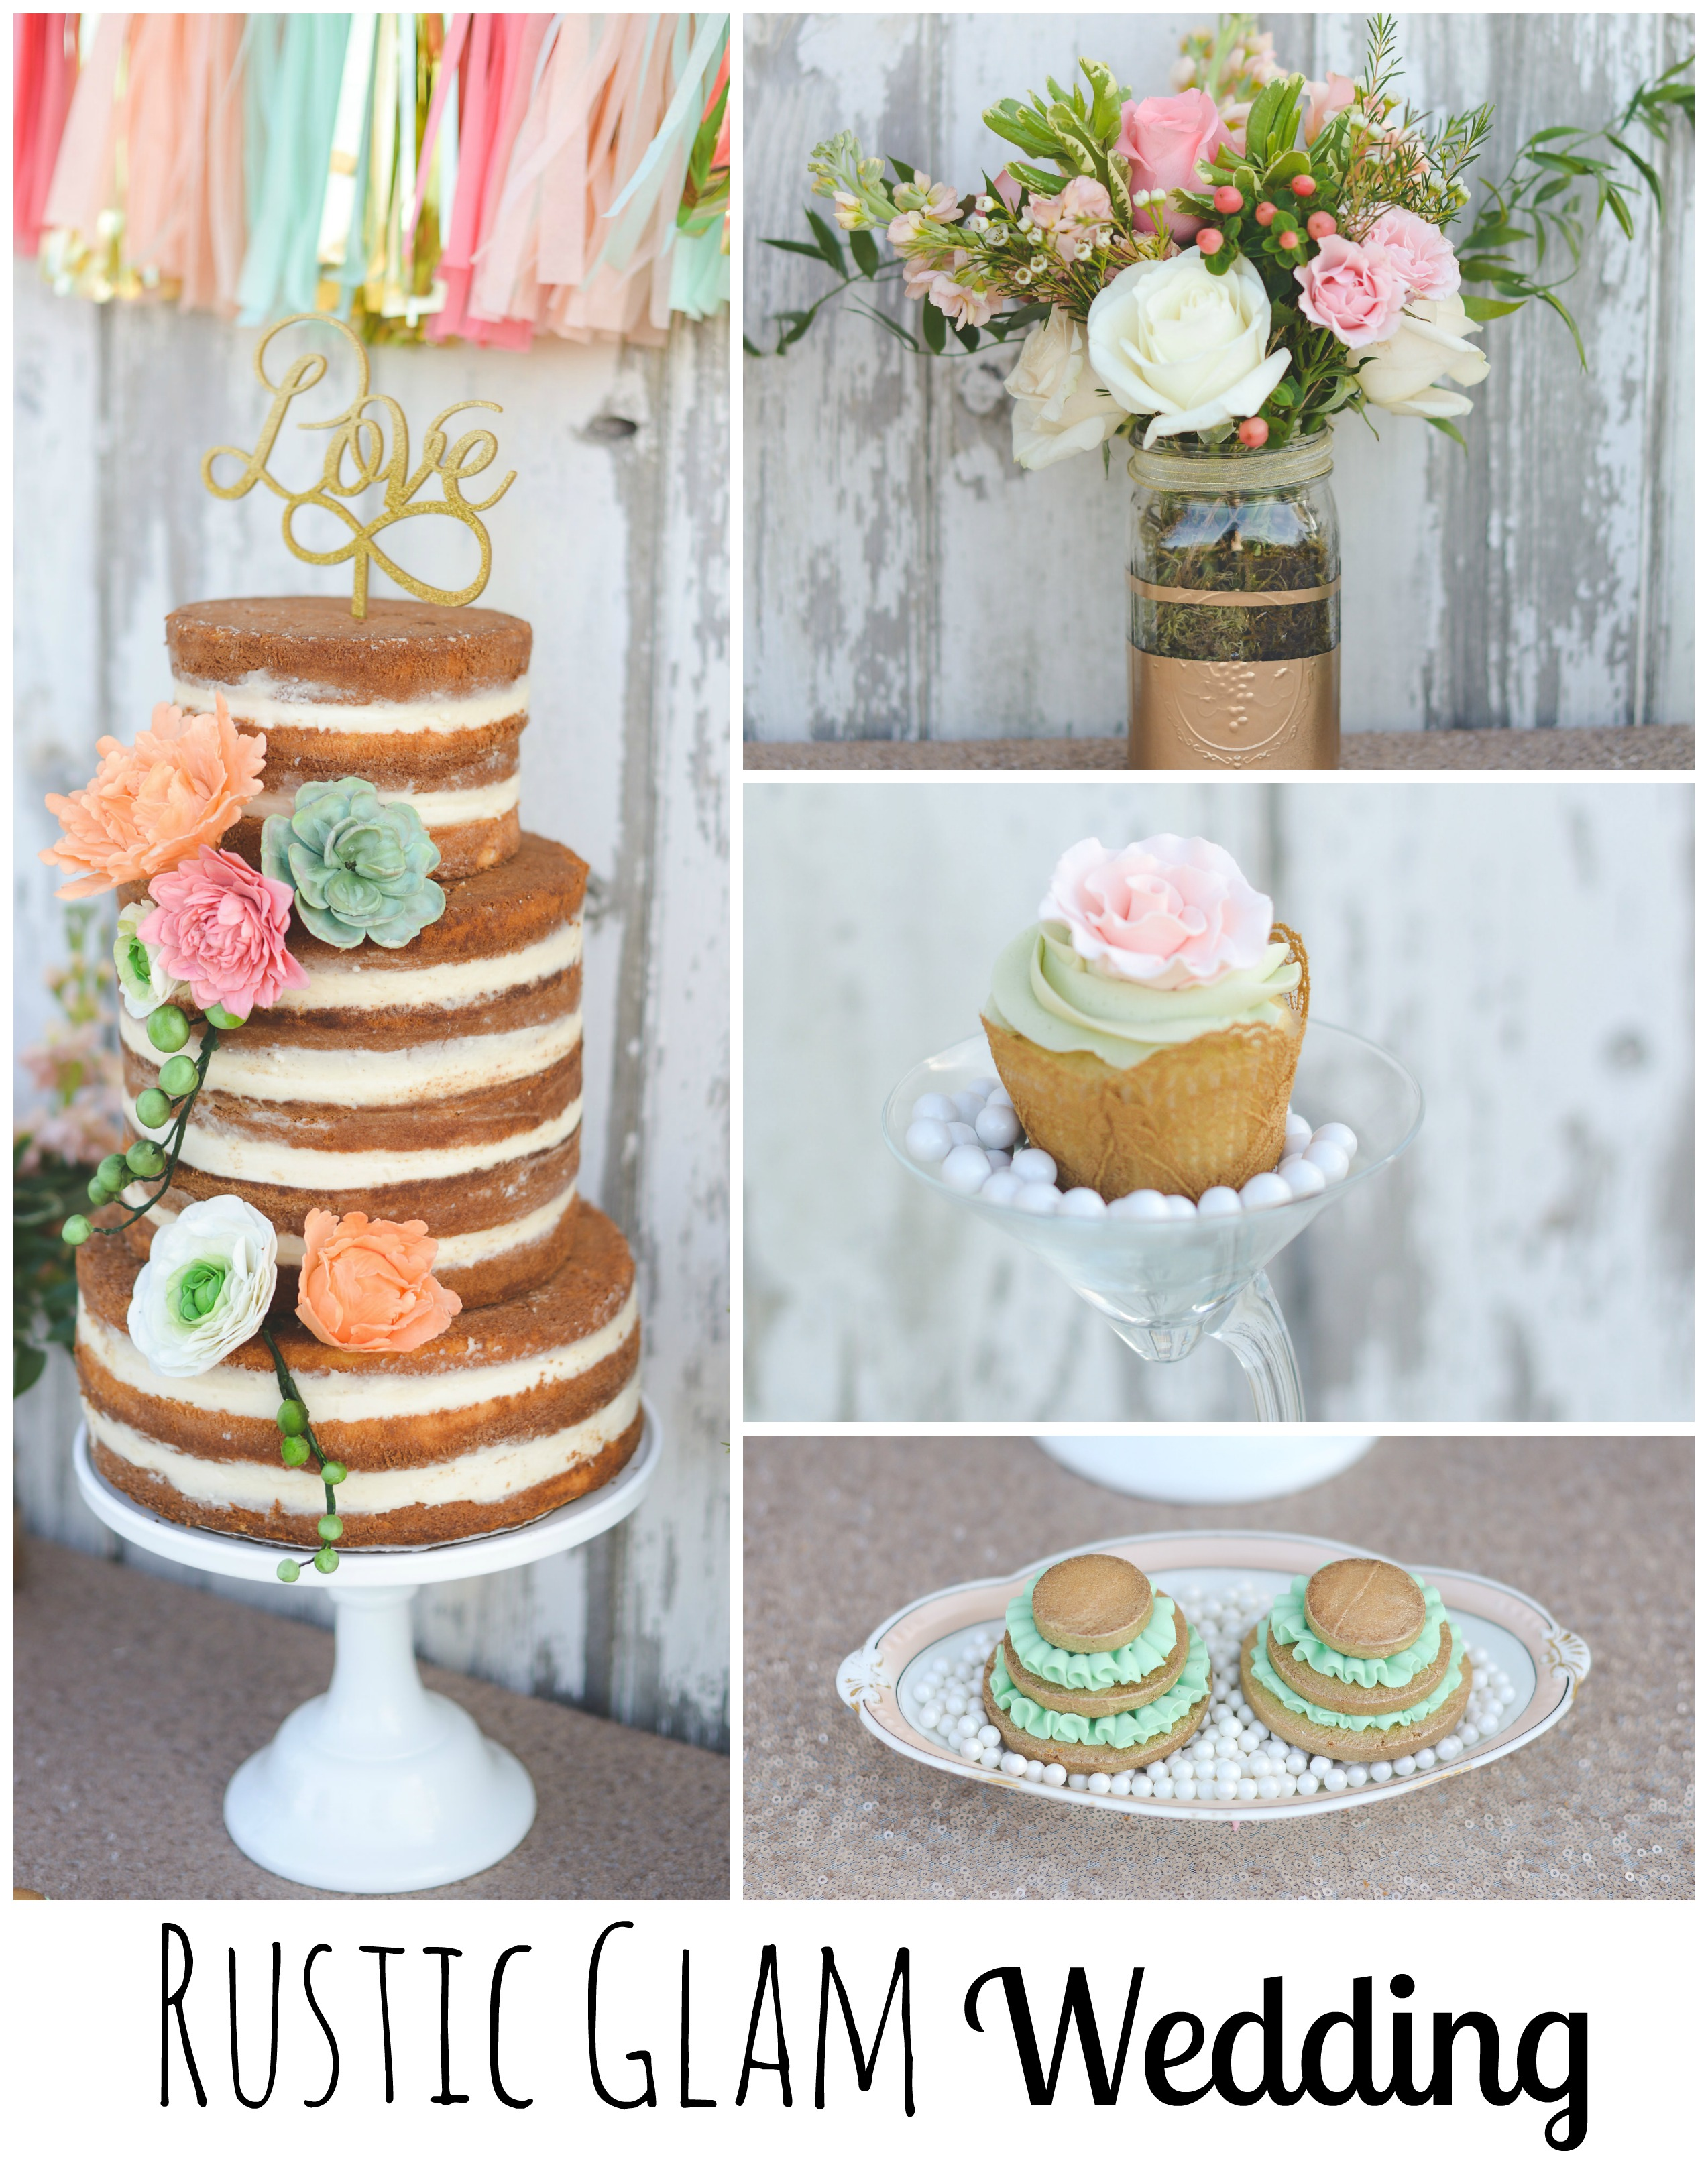 Rustic Glam Wedding Collage Flitter Gold Flowers Cake Cupcake Mint Peach